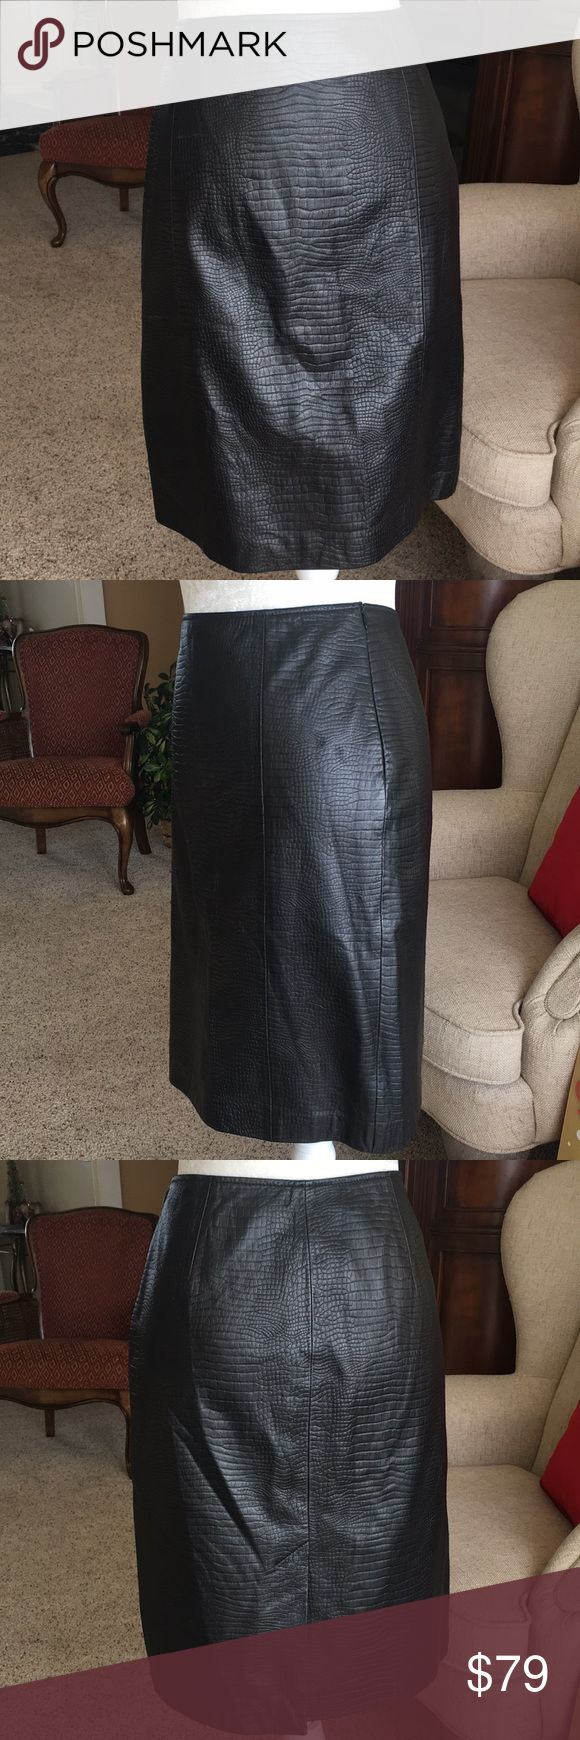 """Ralph Lauren black leather alligator print skirt 100% leather and fully lined straight skirt with back kick pleat. Alligator print throughout dress. Side zipper and button closure. Waist laying flat 15"""" length 21"""" Lauren Ralph Lauren Skirts"""